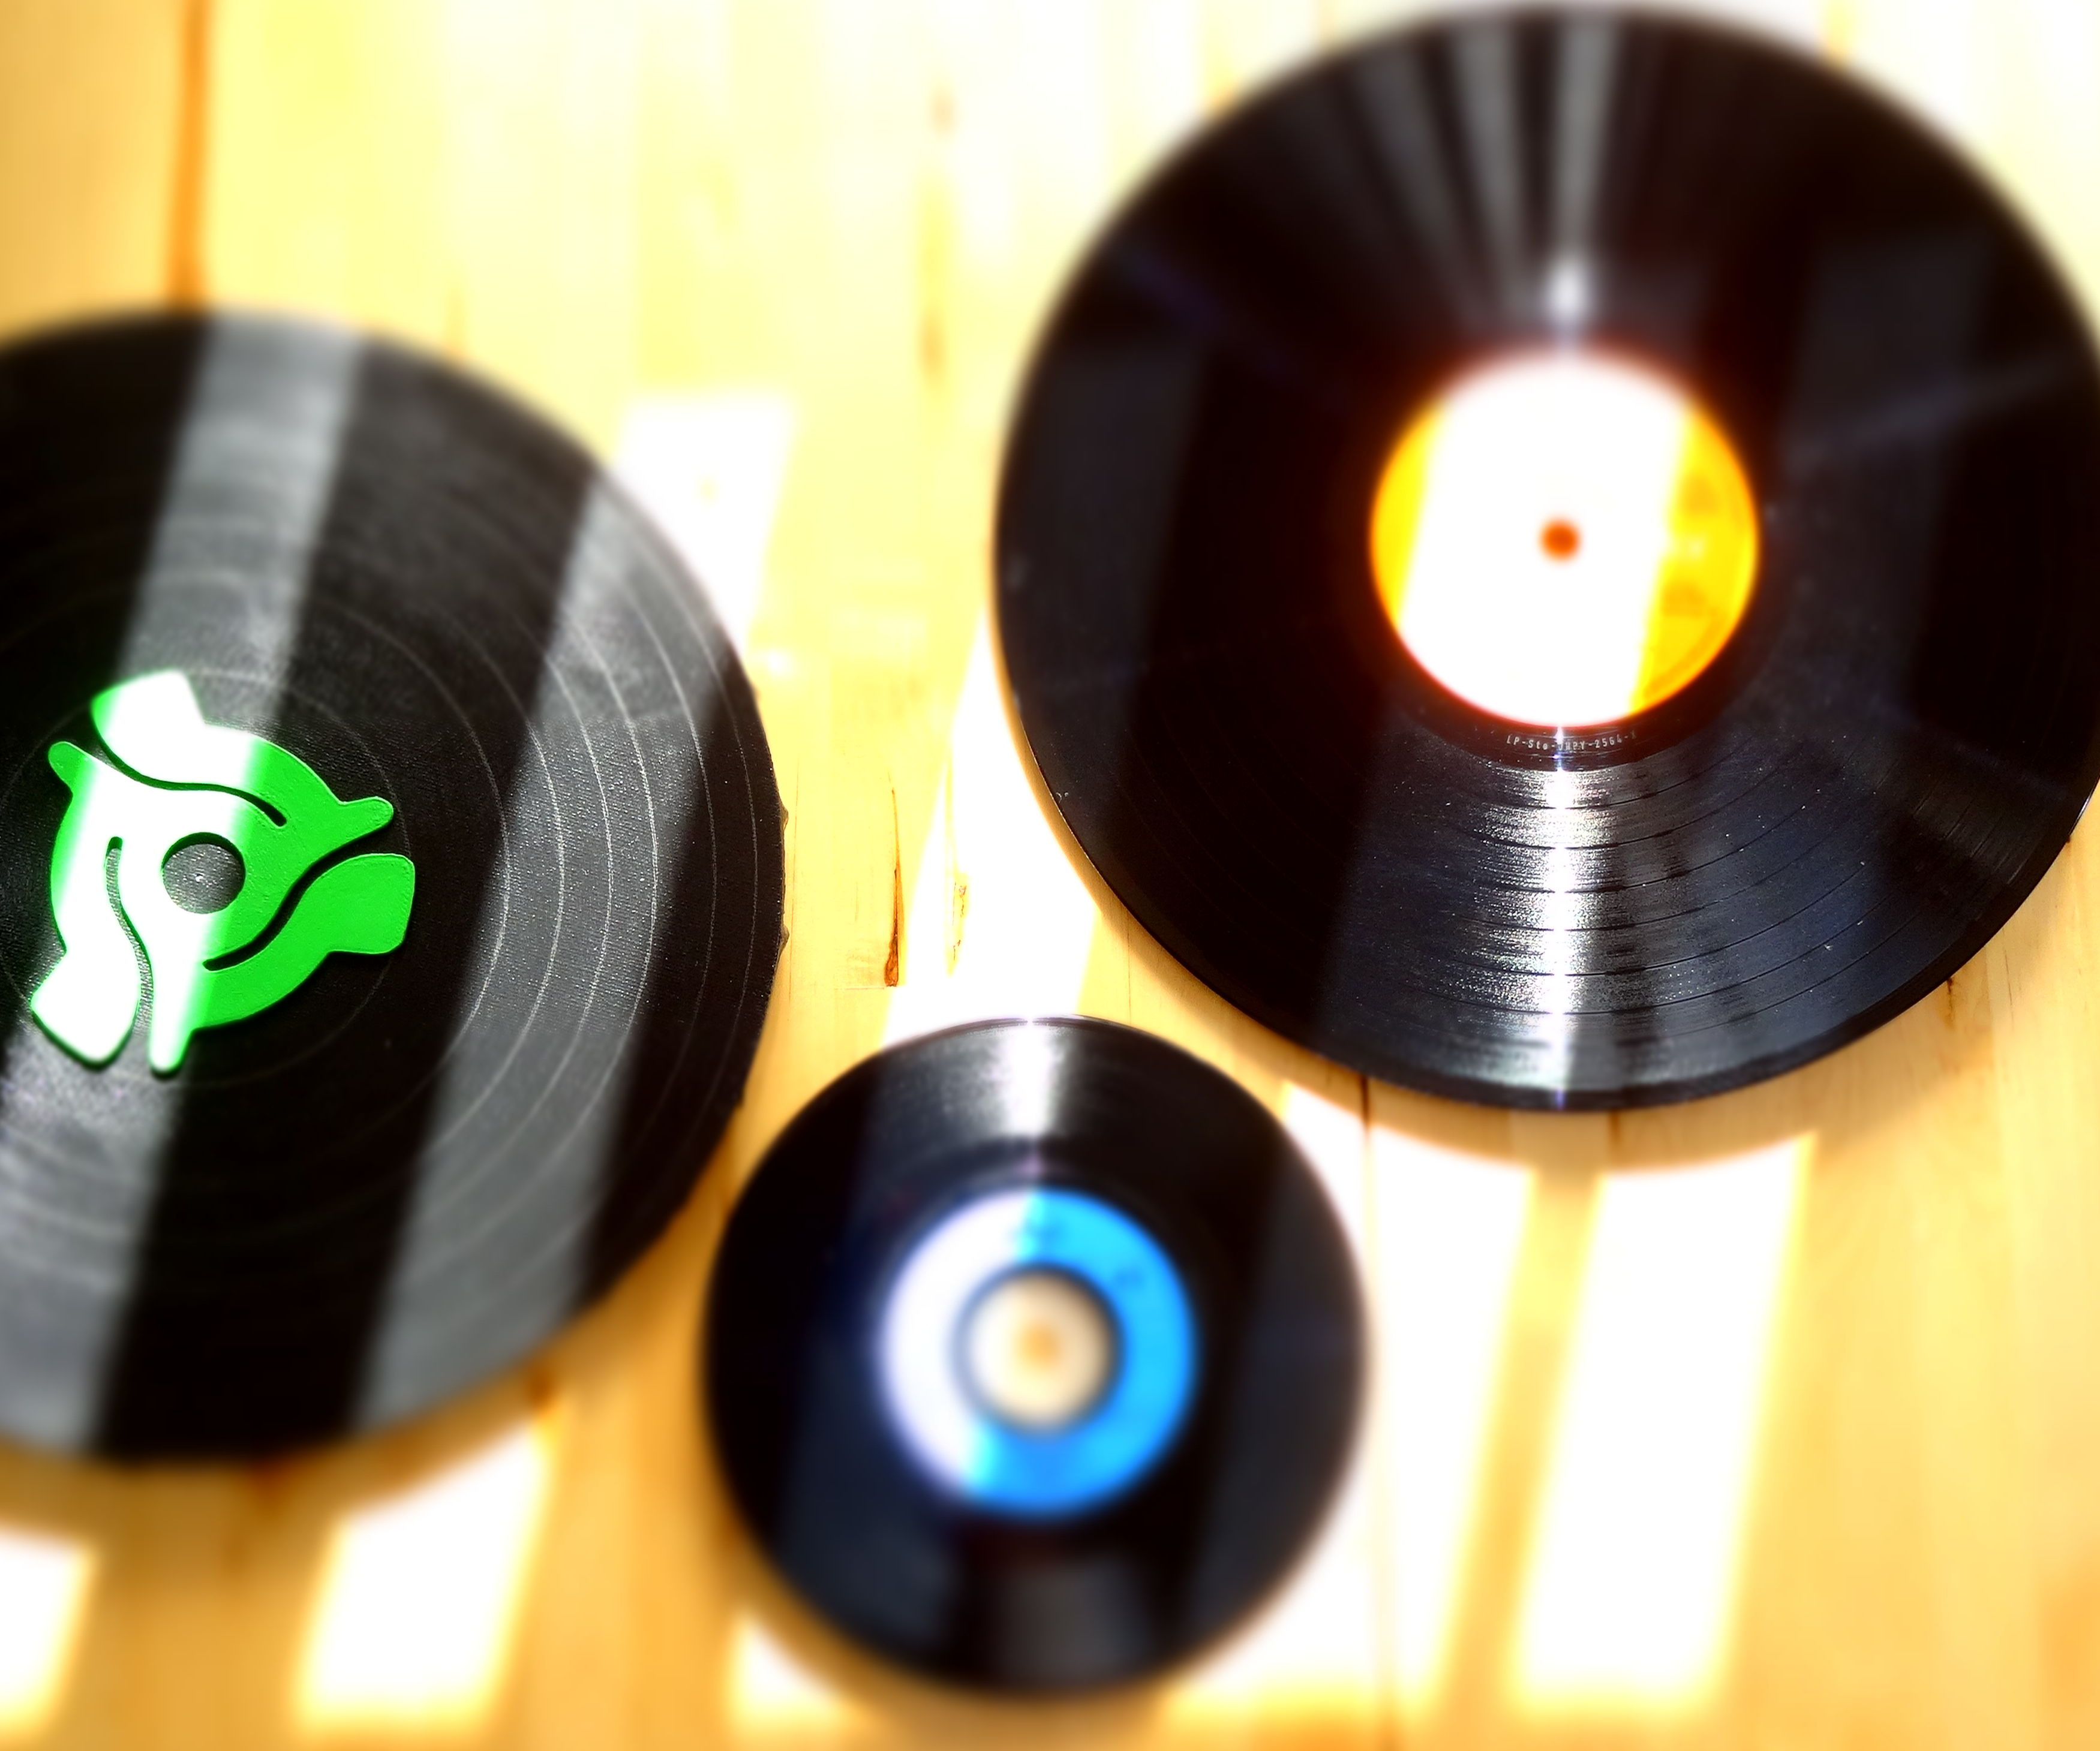 DIY Vinyl Pad -  How to Make Sound With a Vinyl Pad and Piezoelectric